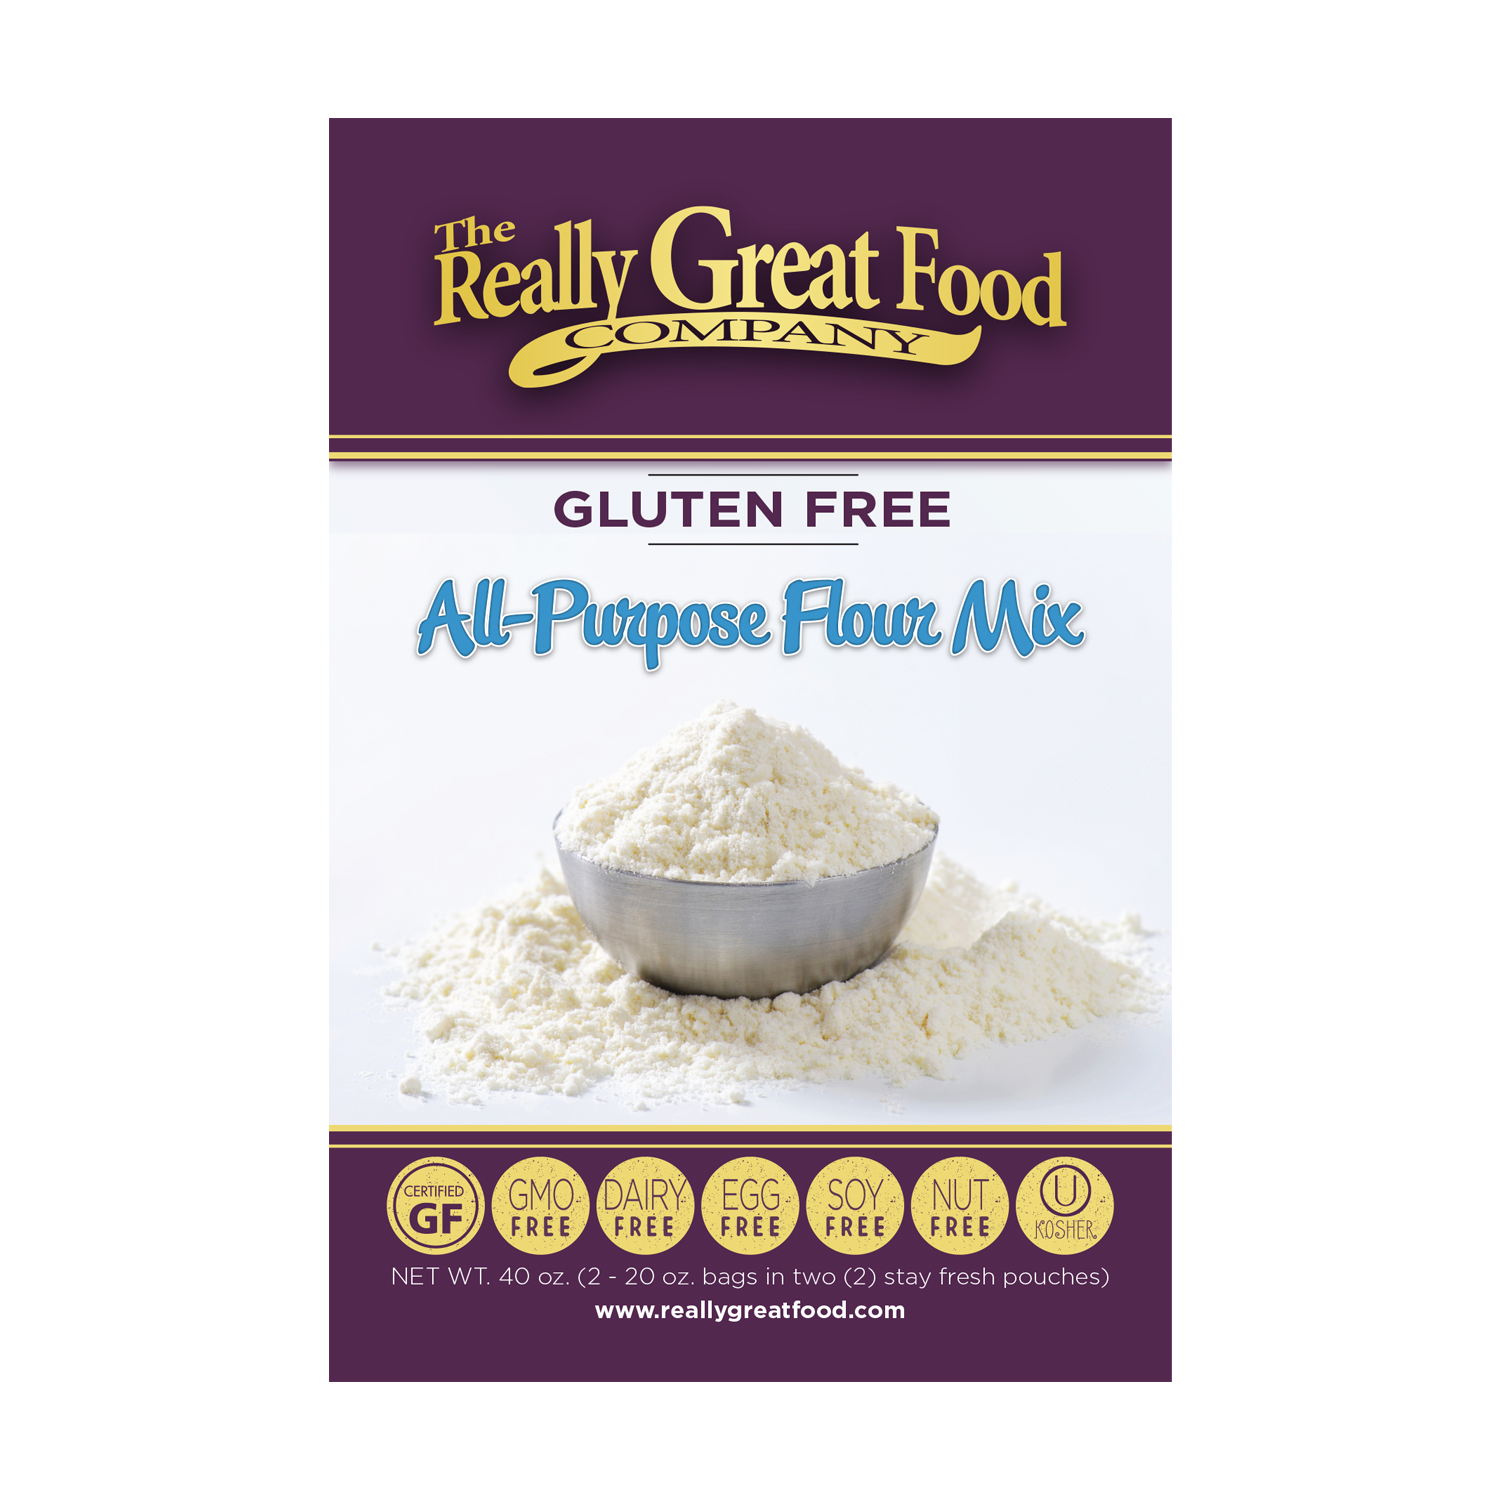 Gluten Free All-Purpose Flour